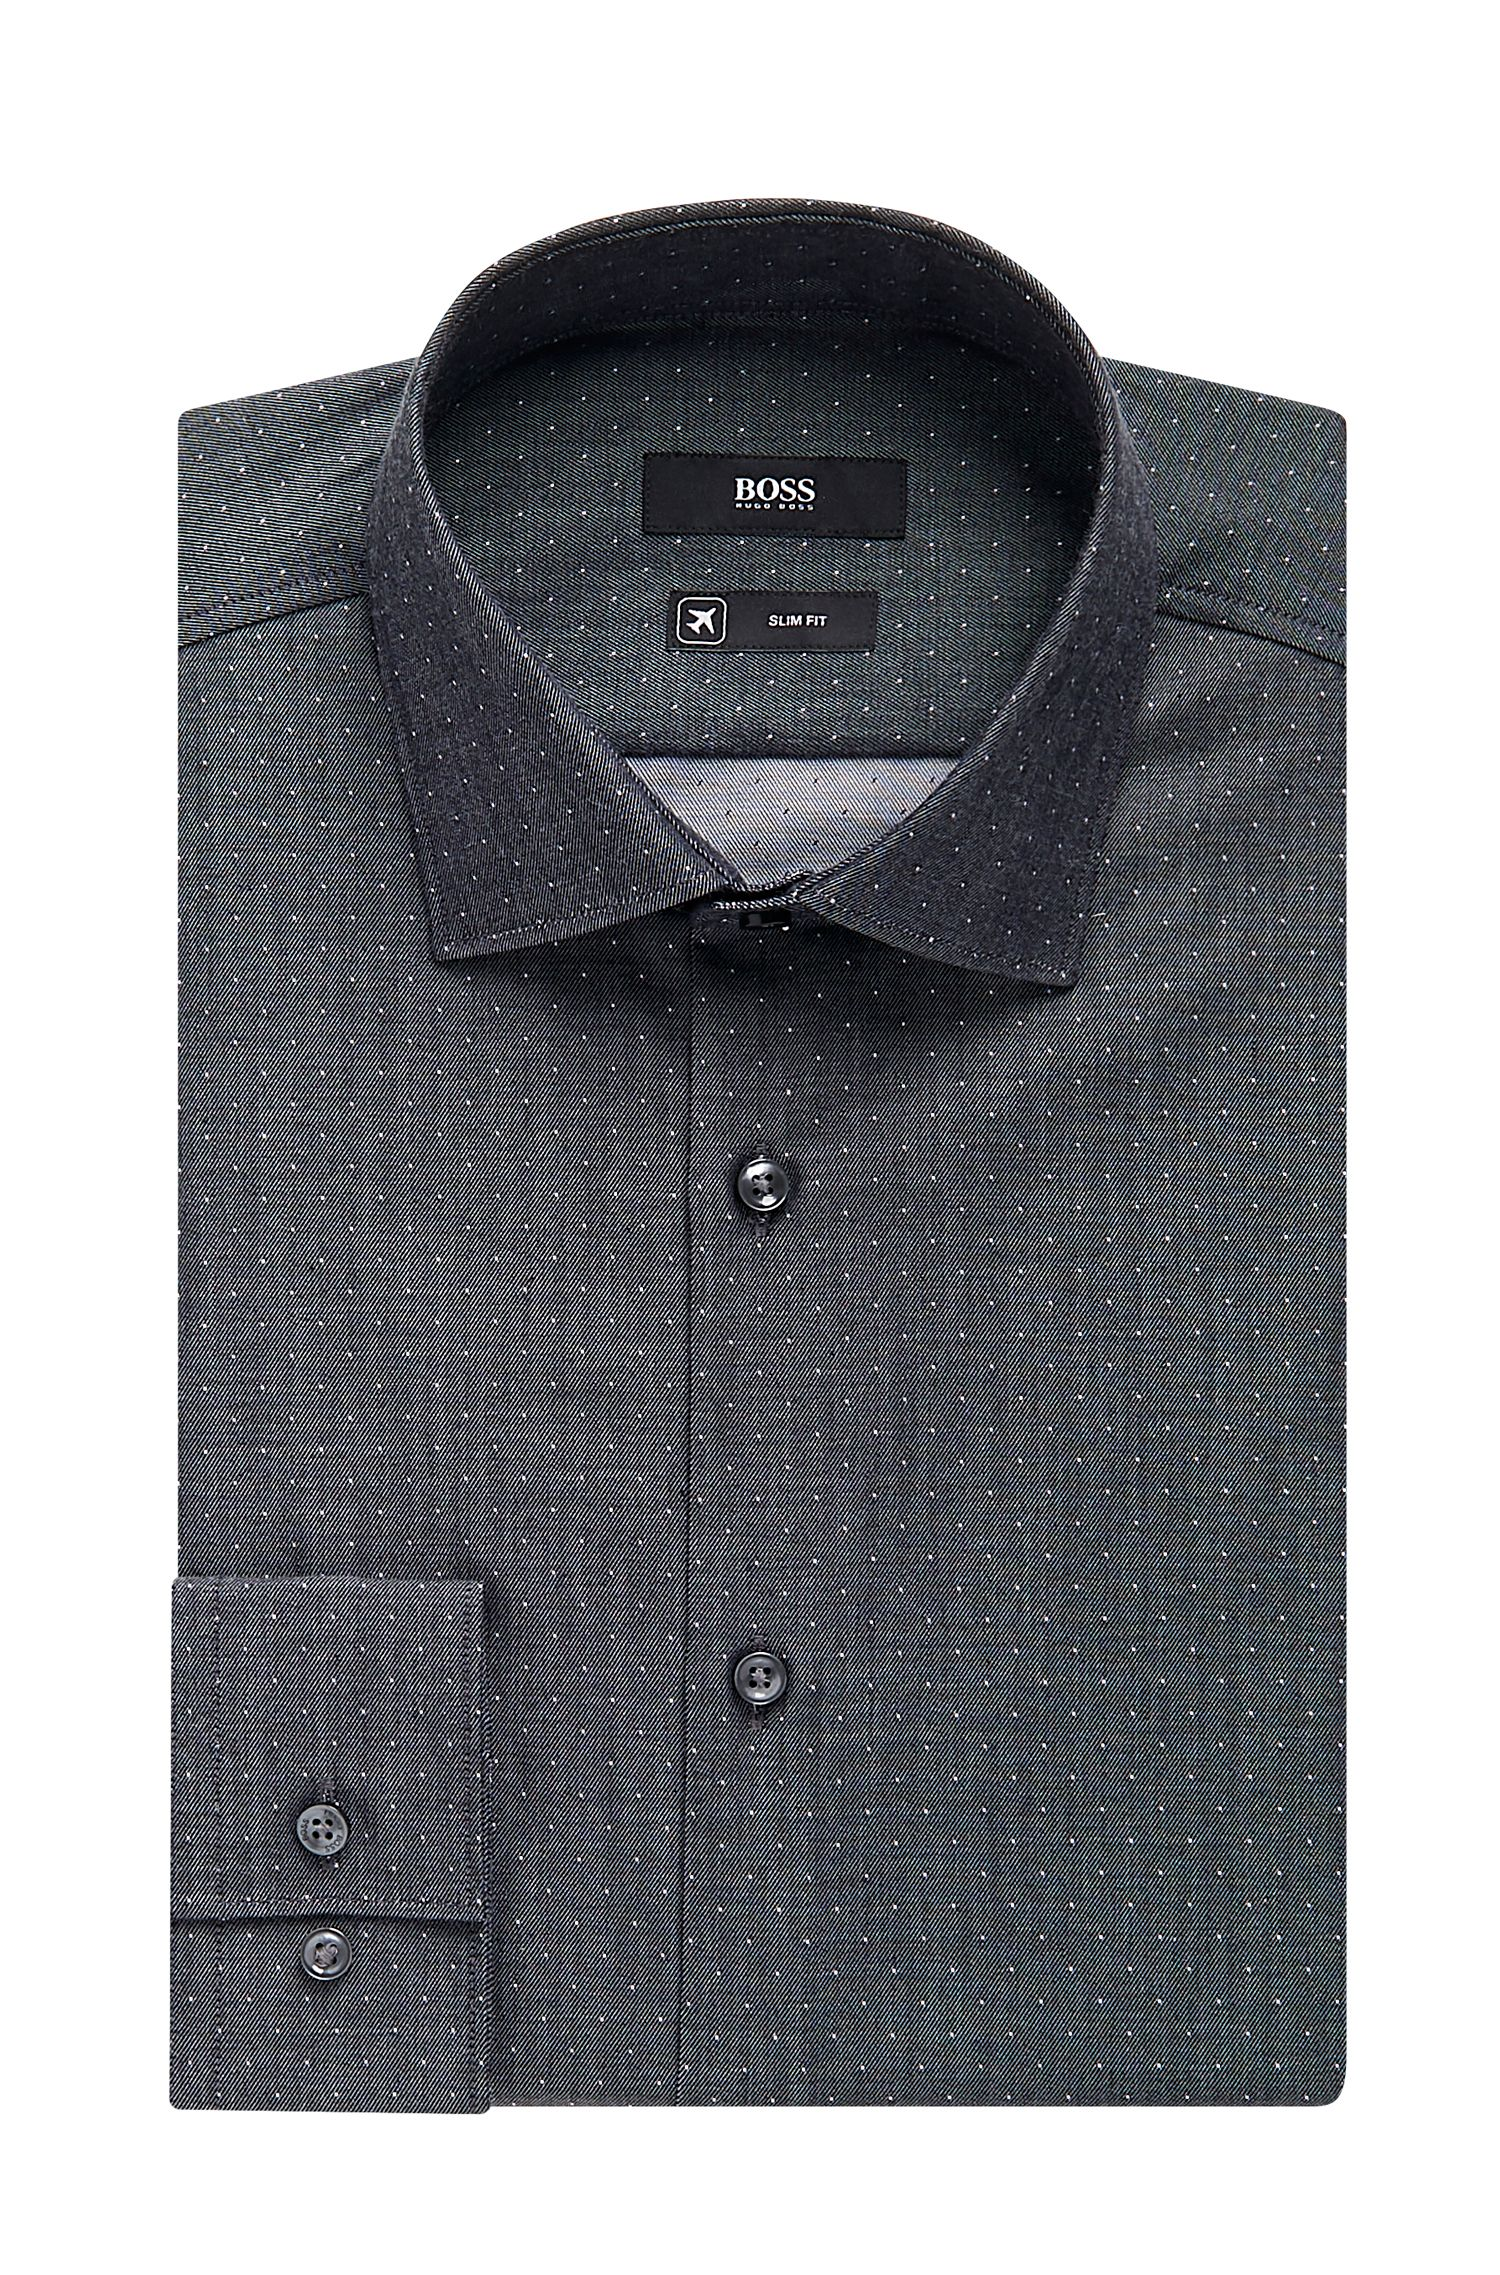 'Ismo' | Slim Fit, Traveler Microdot Cotton Dress Shirt